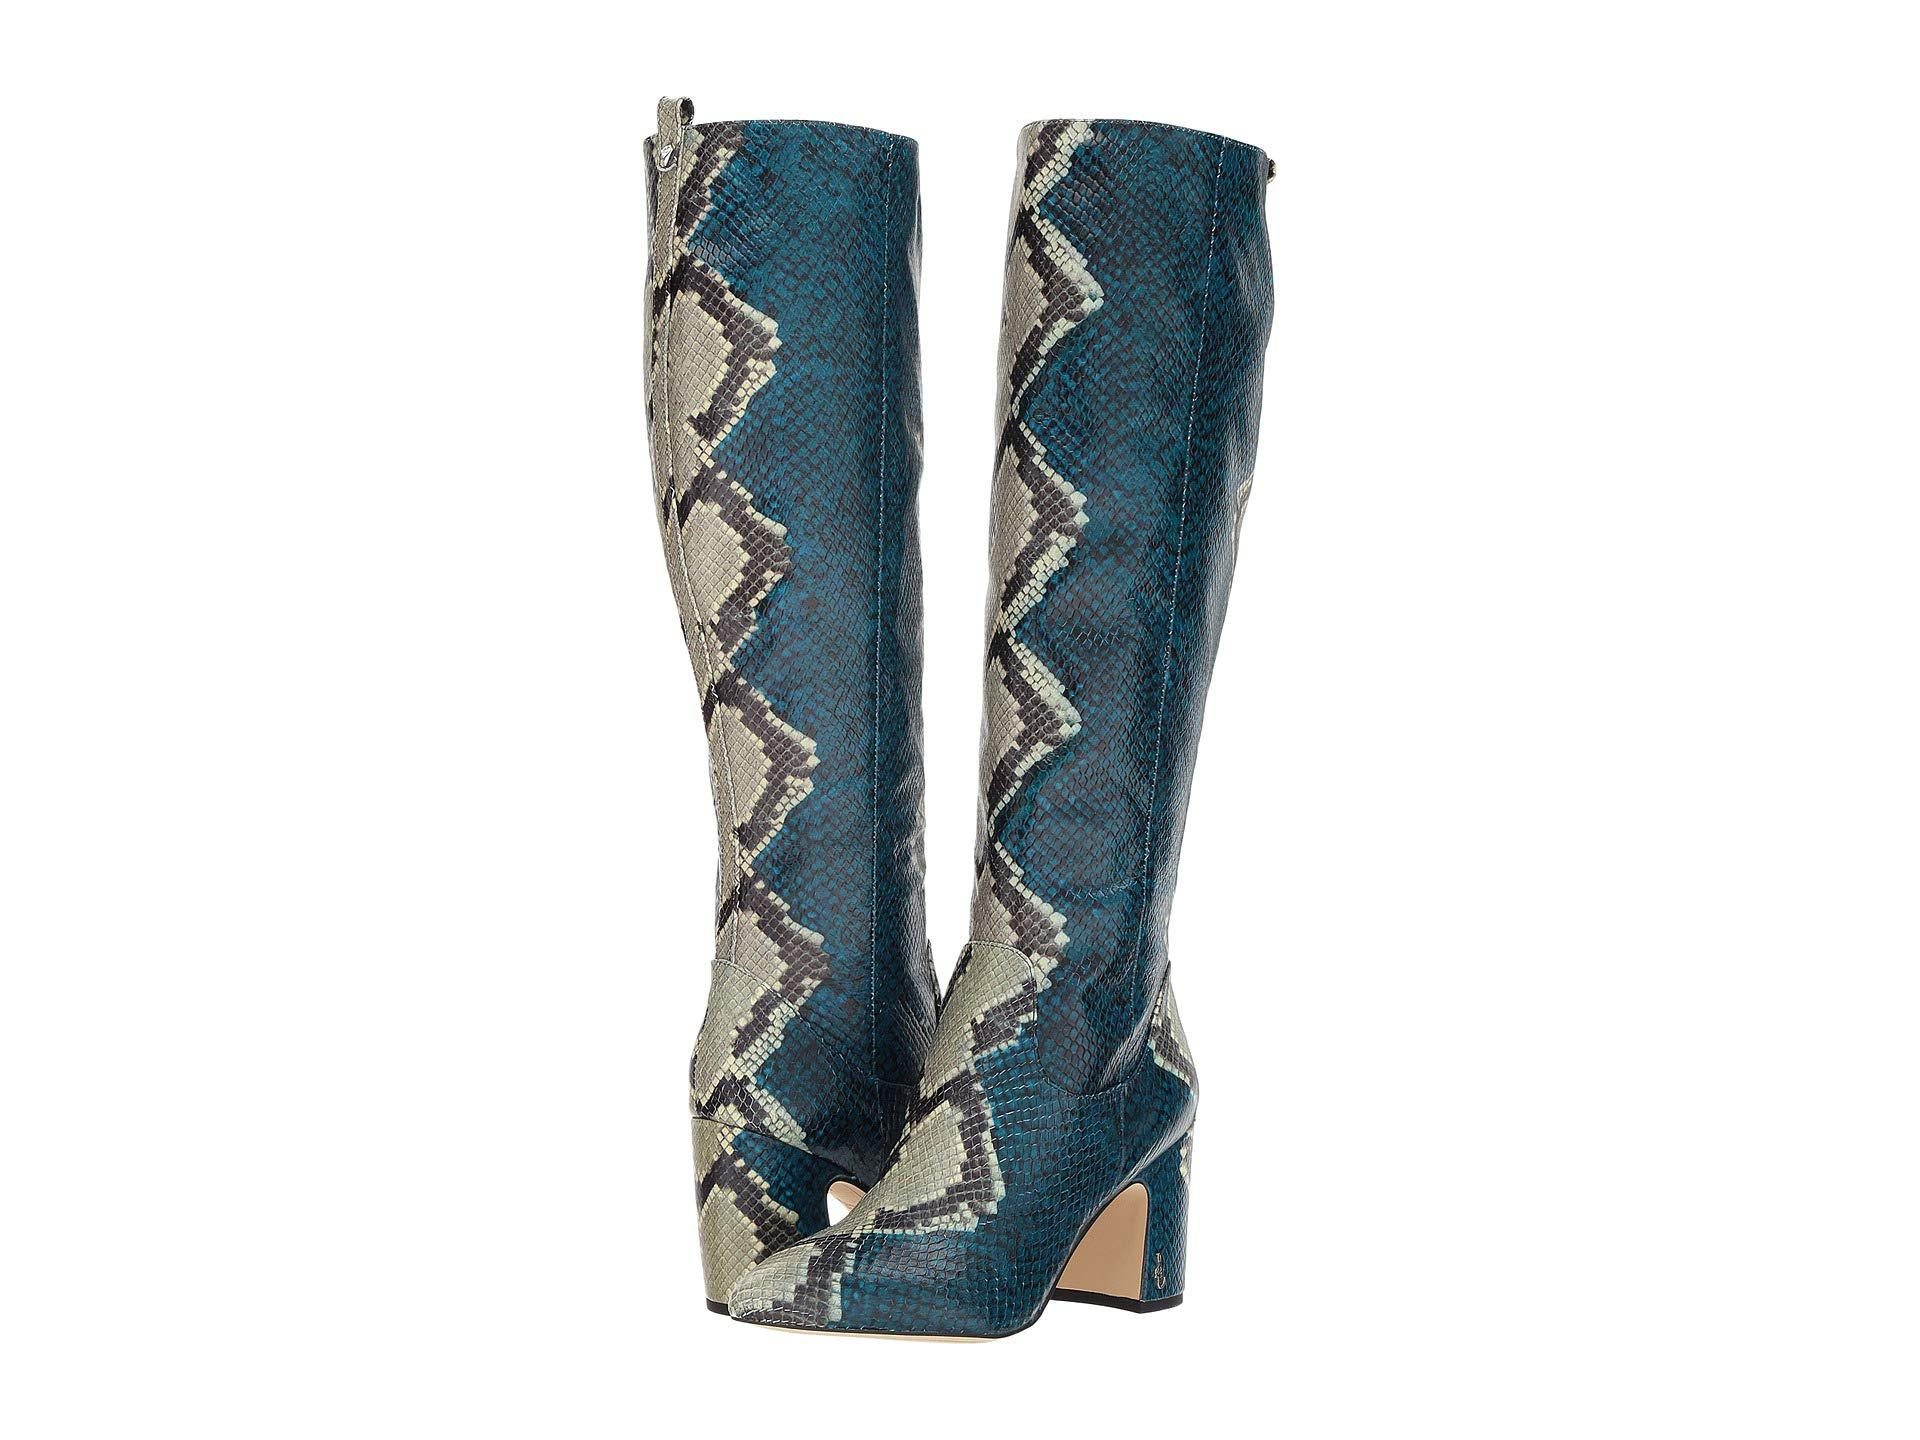 5376e4f0dd1 Lyst - Sam Edelman Hai Knee High Boot in Blue - Save 60%